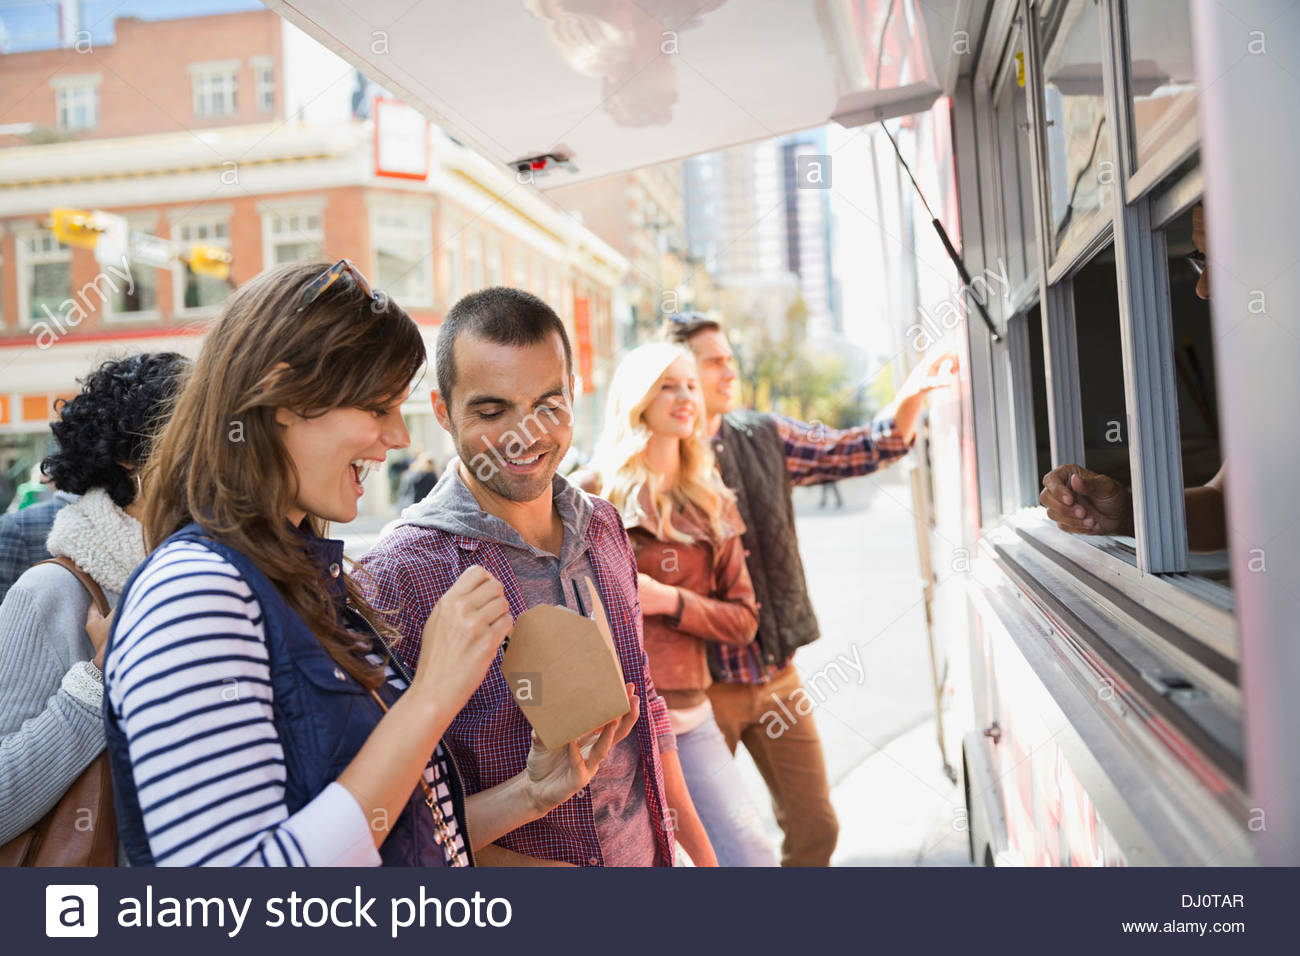 Couple enjoying take out food - Stock Image